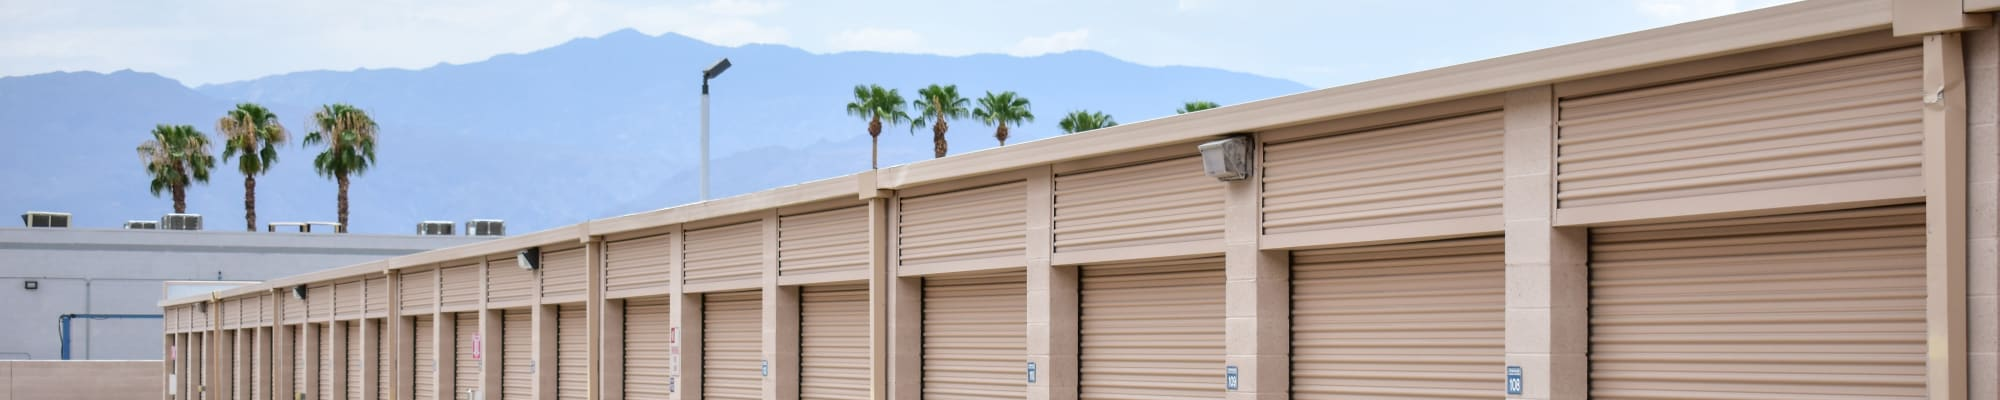 Hours and directions to STOR-N-LOCK Self Storage in Palm Desert, California